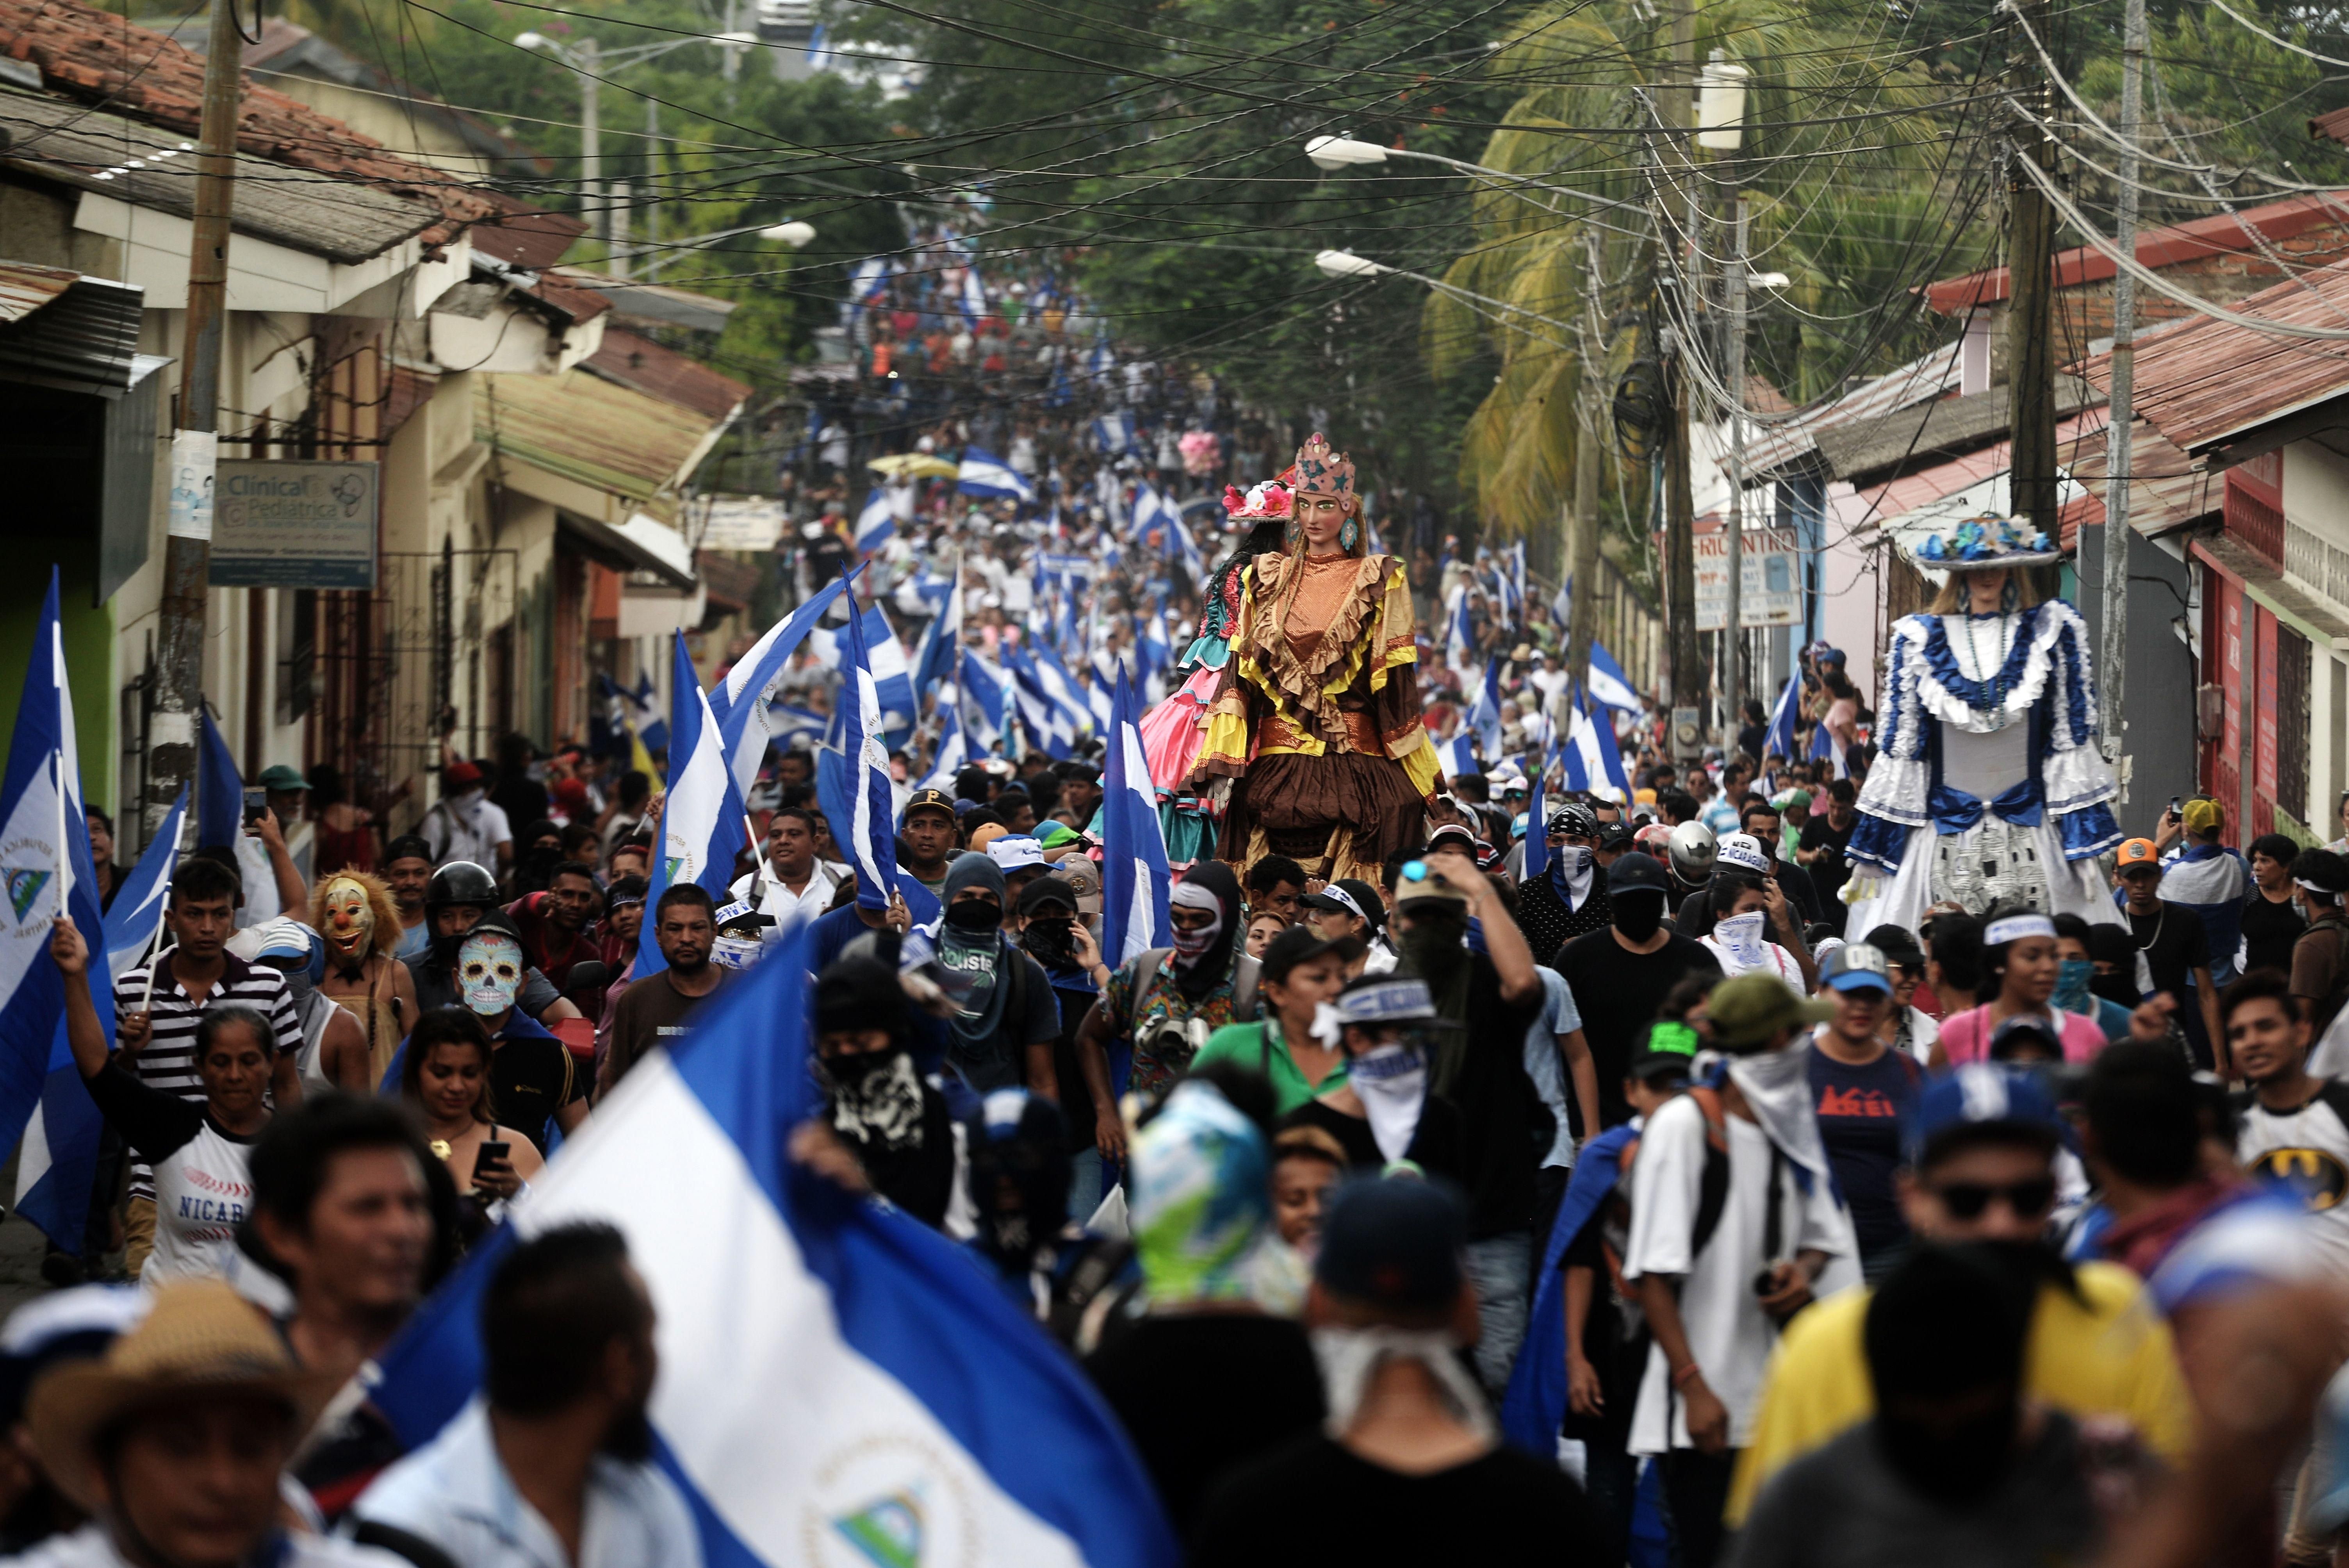 """<p>Protesters participate in the """"March of Mocking"""" against Nicaraguan President Daniel Ortega and his wife, Vice President Rosario Murillo, in Leon, Nicaragua, on July 28, 2018. (Photo: Marvin Recinos/AFP/Getty Images) </p>"""